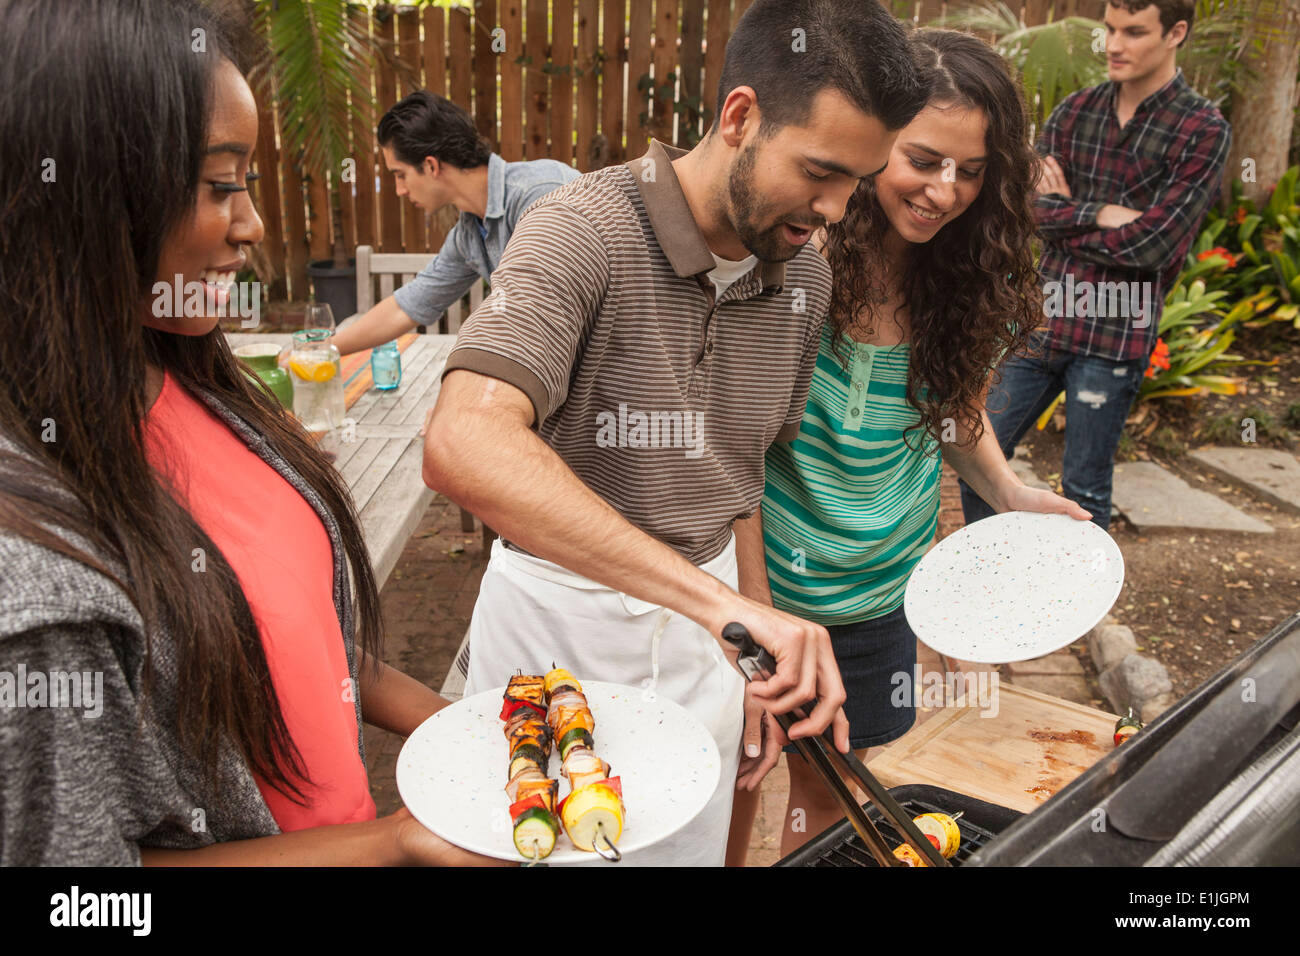 Amis assis autour de la table barbecue partage Photo Stock